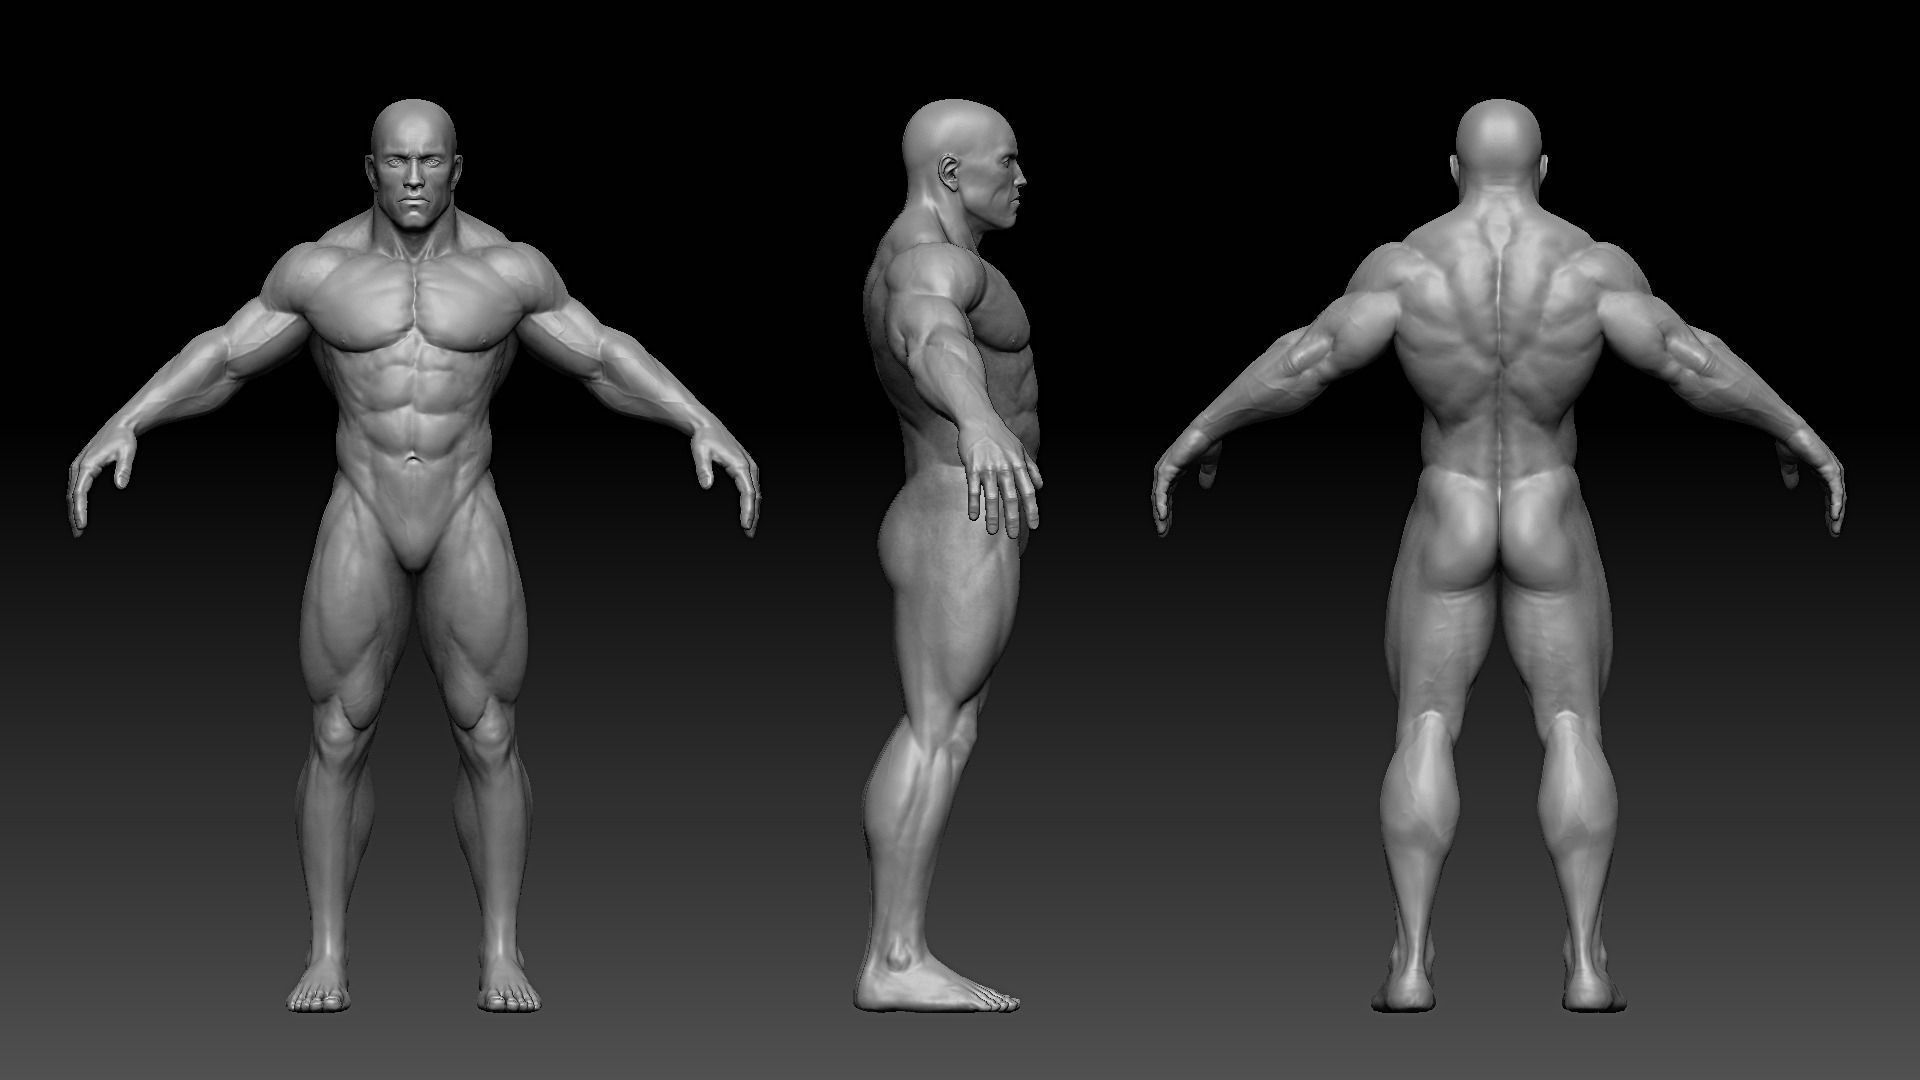 Pin by Rolando Herrera on Character model reference board ...